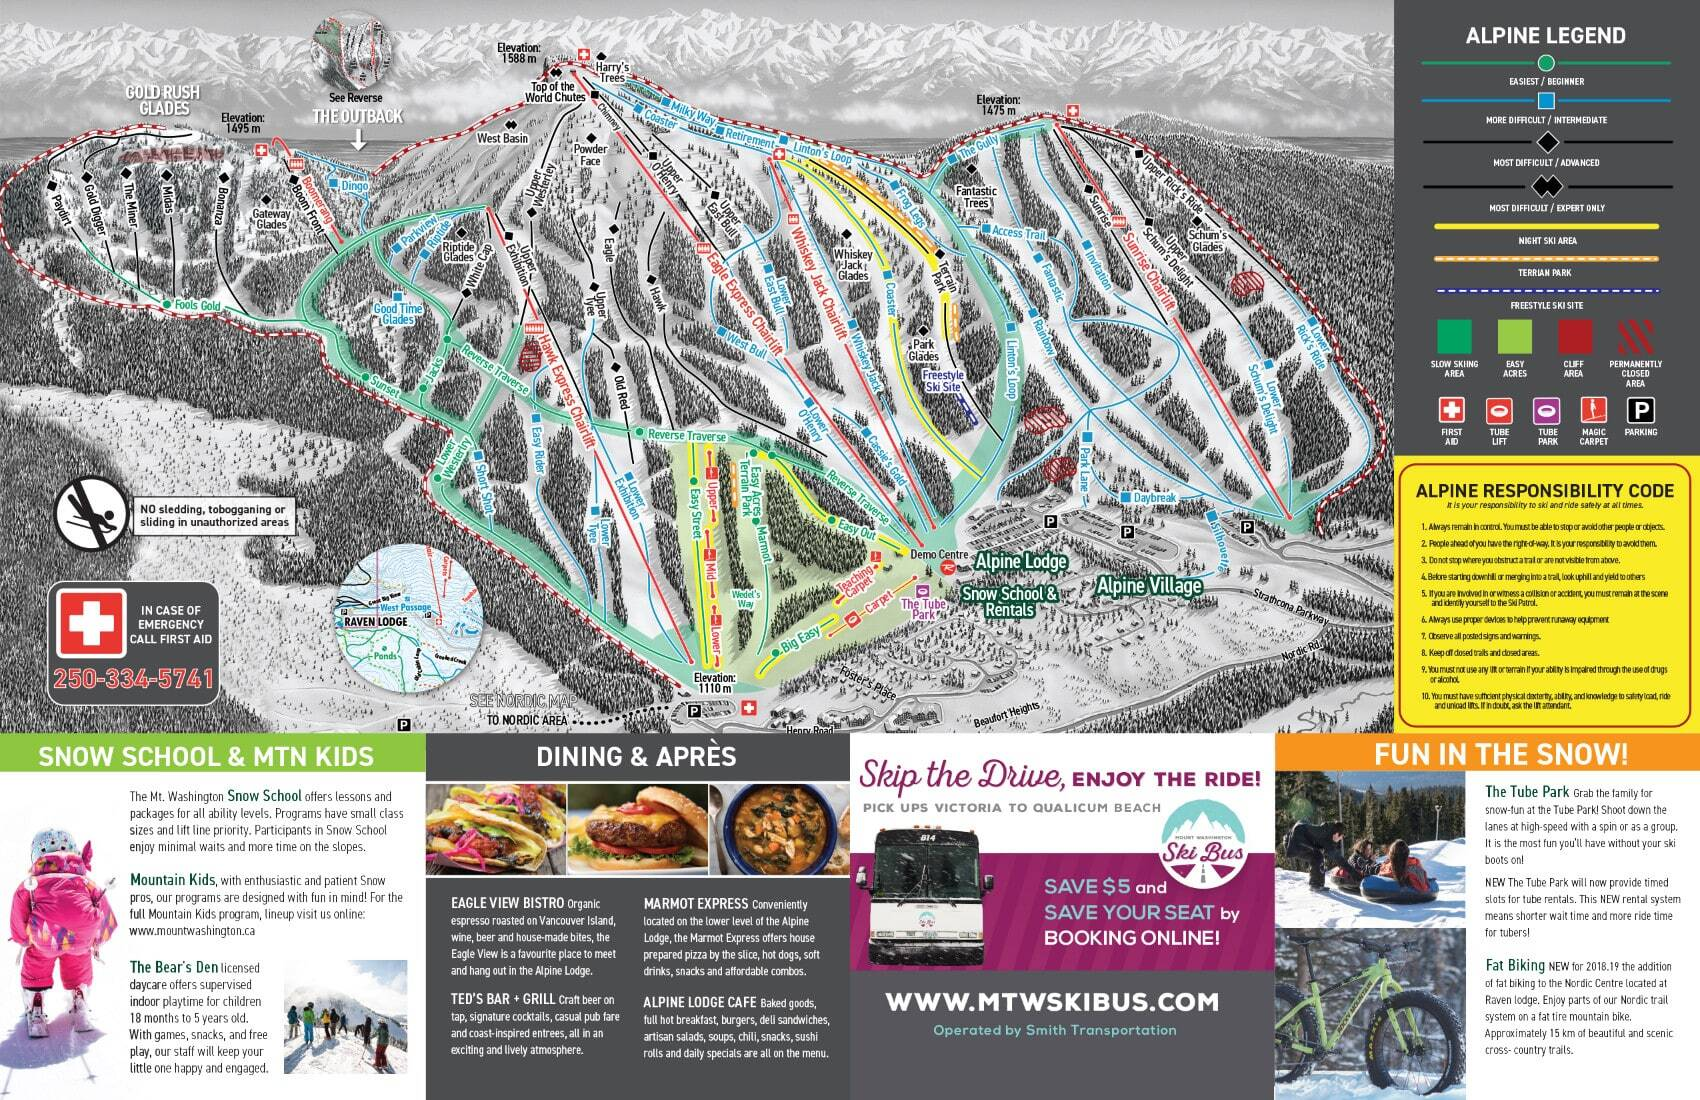 Mount Washington Piste / Trail Map